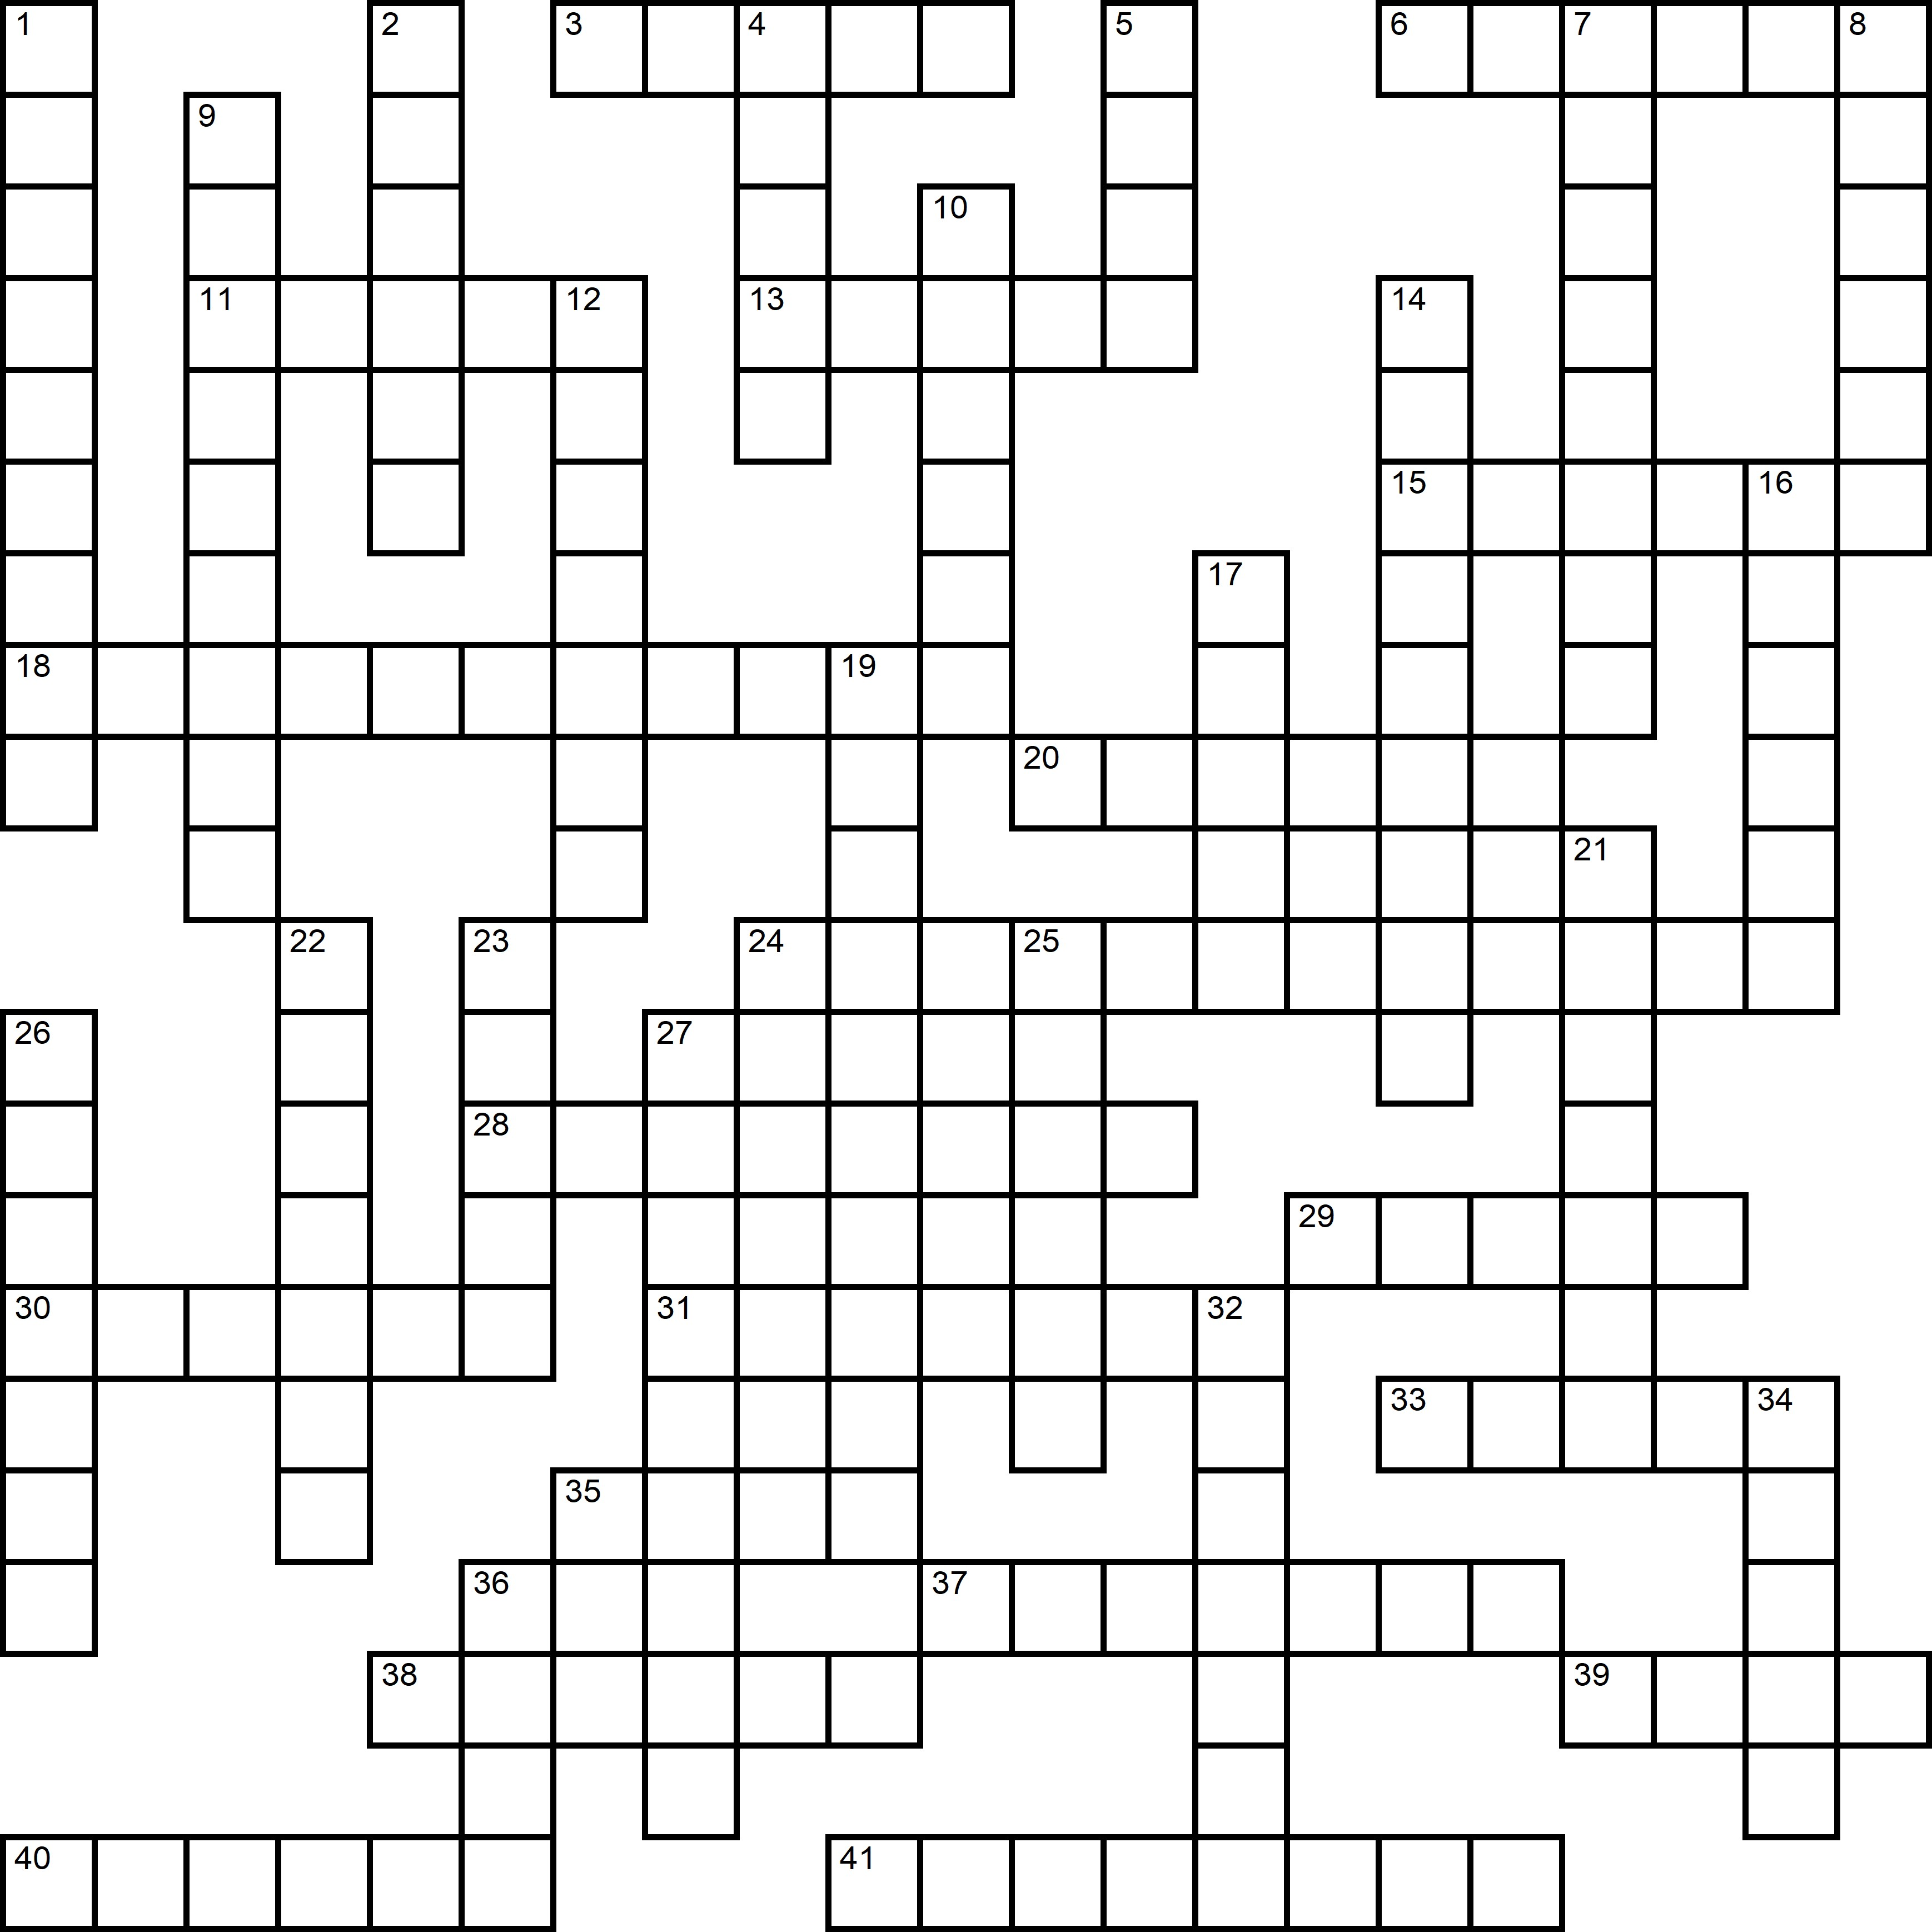 Easy Crossword About Songs